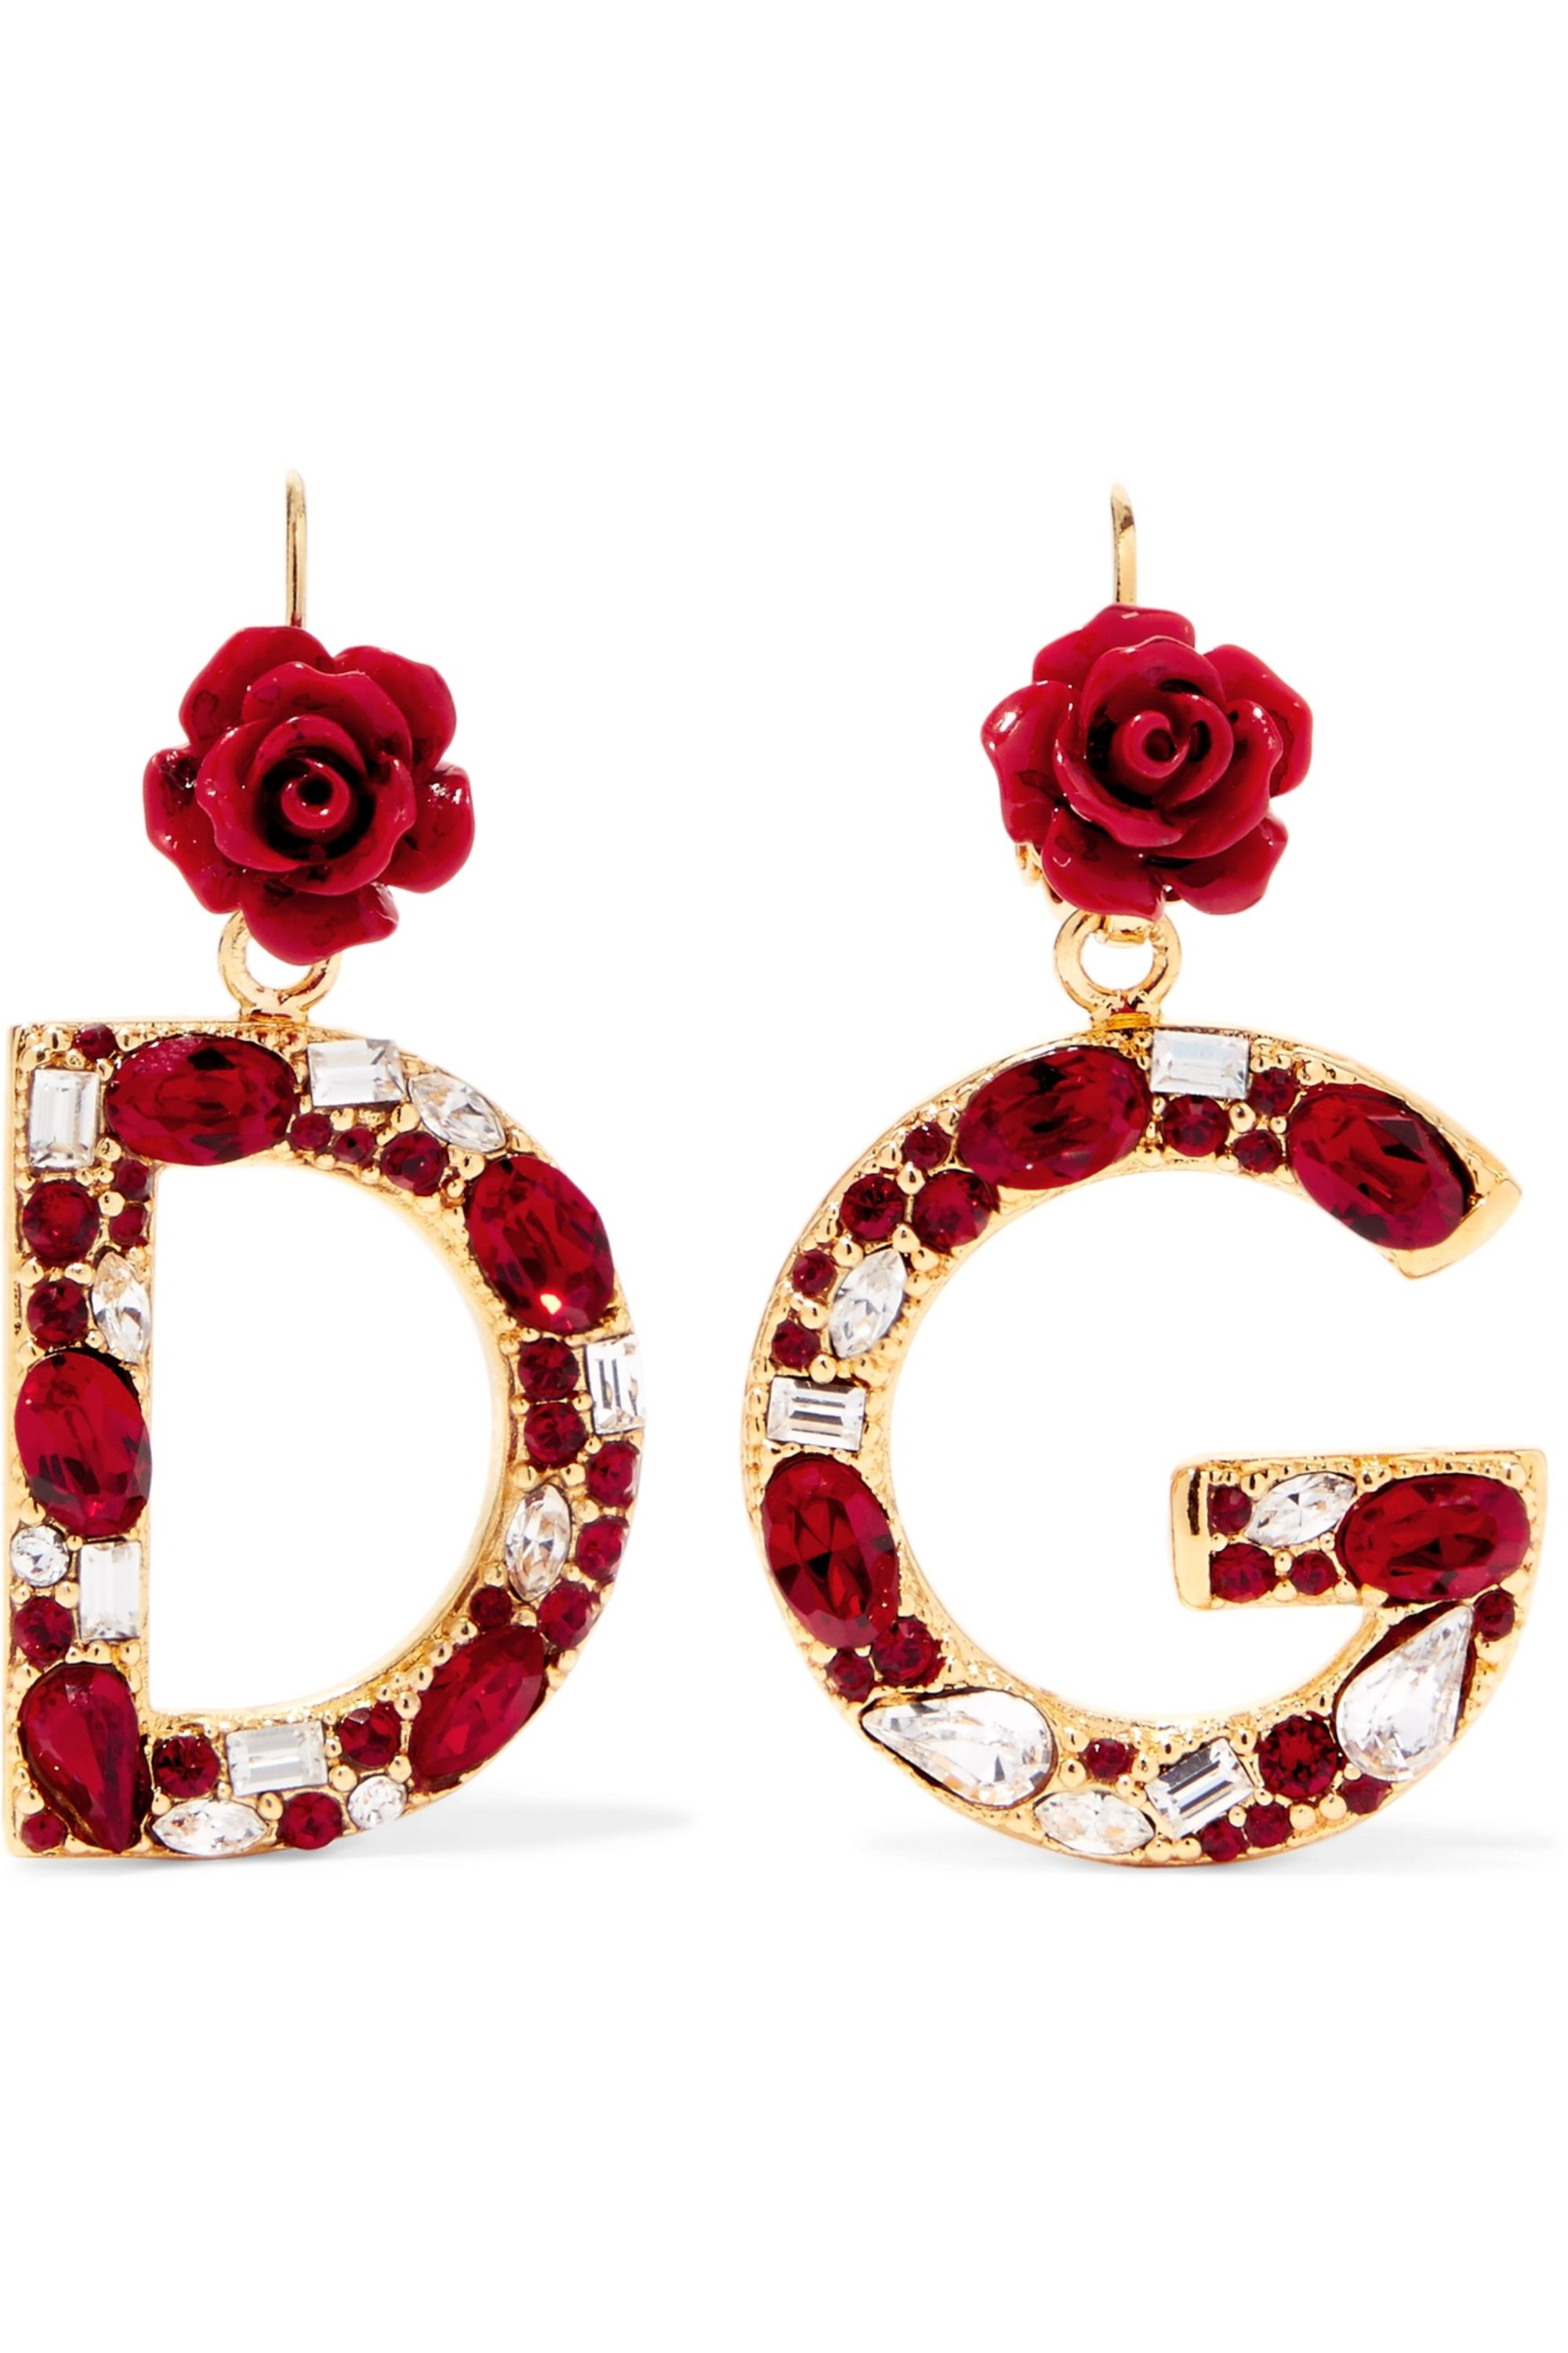 Dolce & Gabbana Gold-plated, enamel and crystal earrings